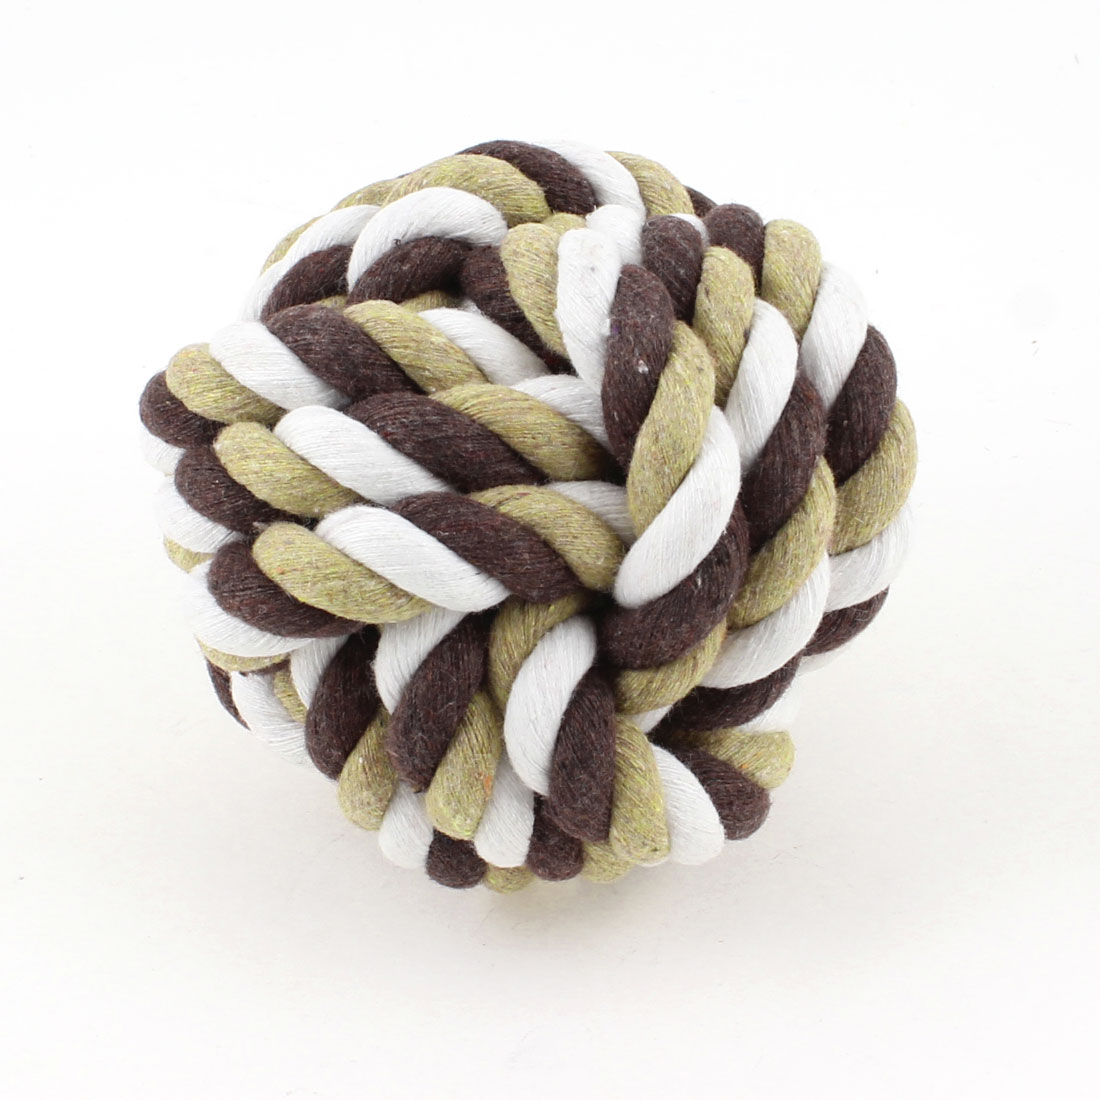 "Tri Color 3.3"" Diameter Cotton Strand Cord Woven Knot Dog Rope Ball Toy"